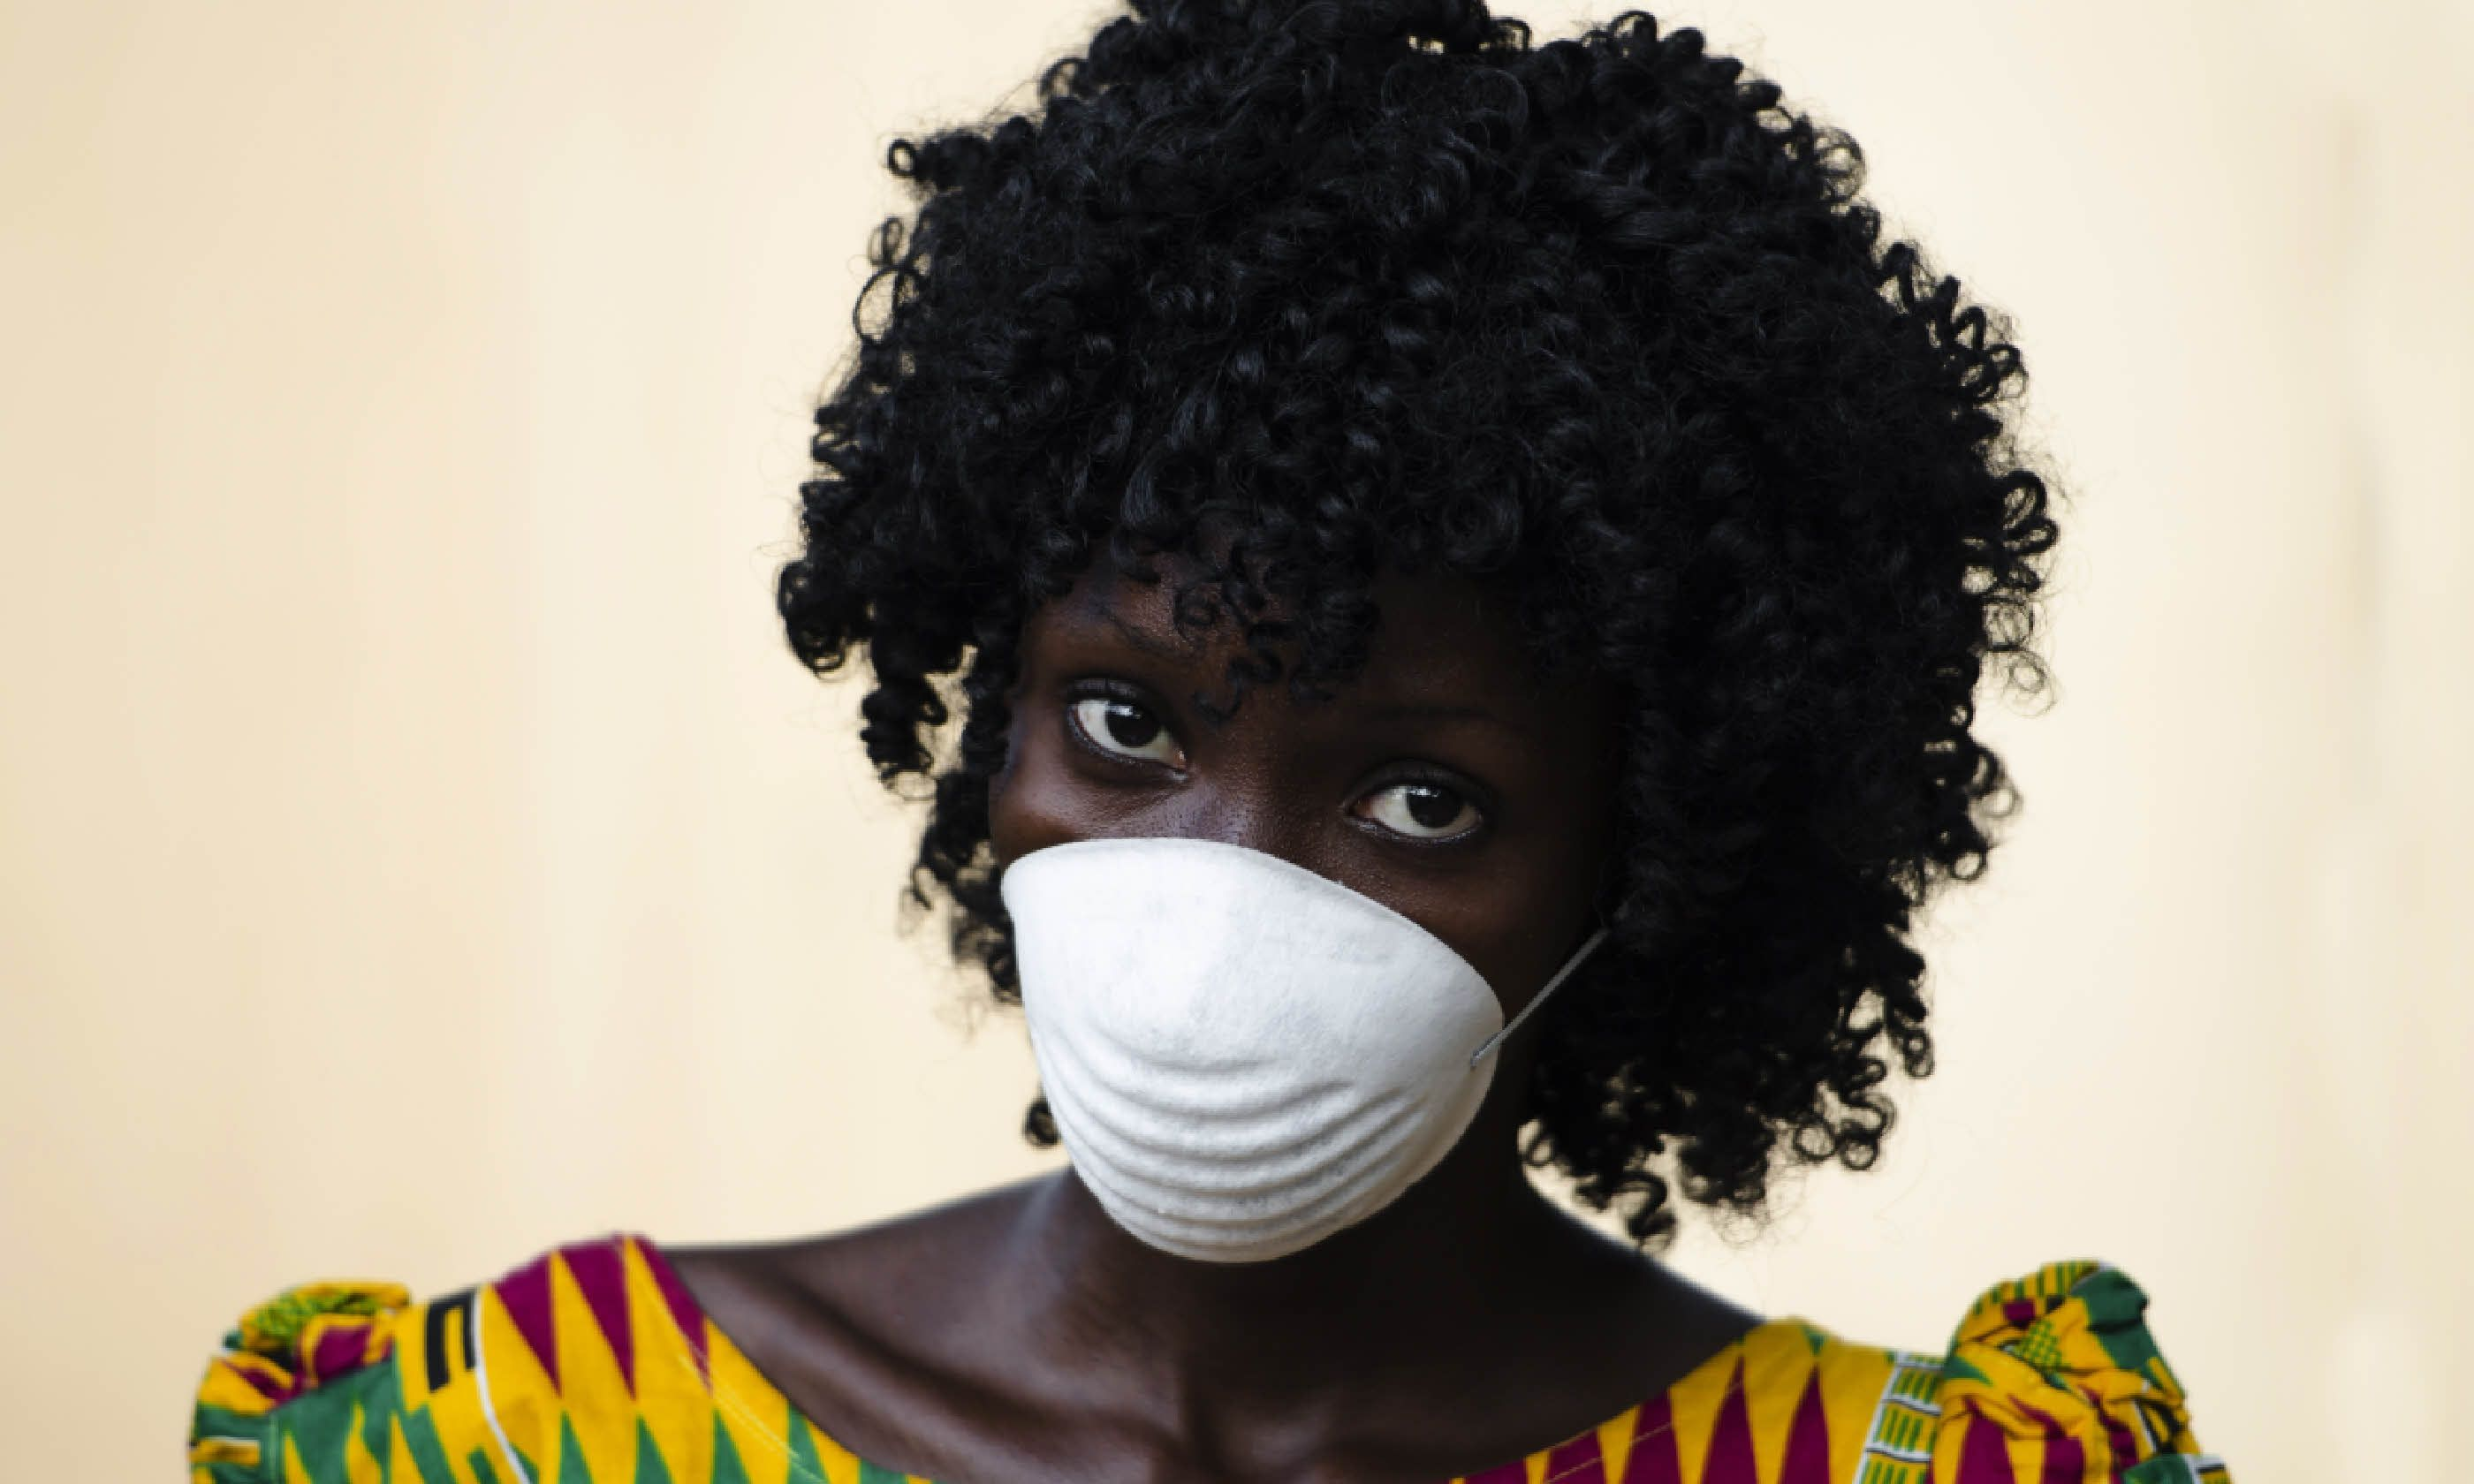 A doctor protects herself from ebola during the outbreak (Shutterstock)